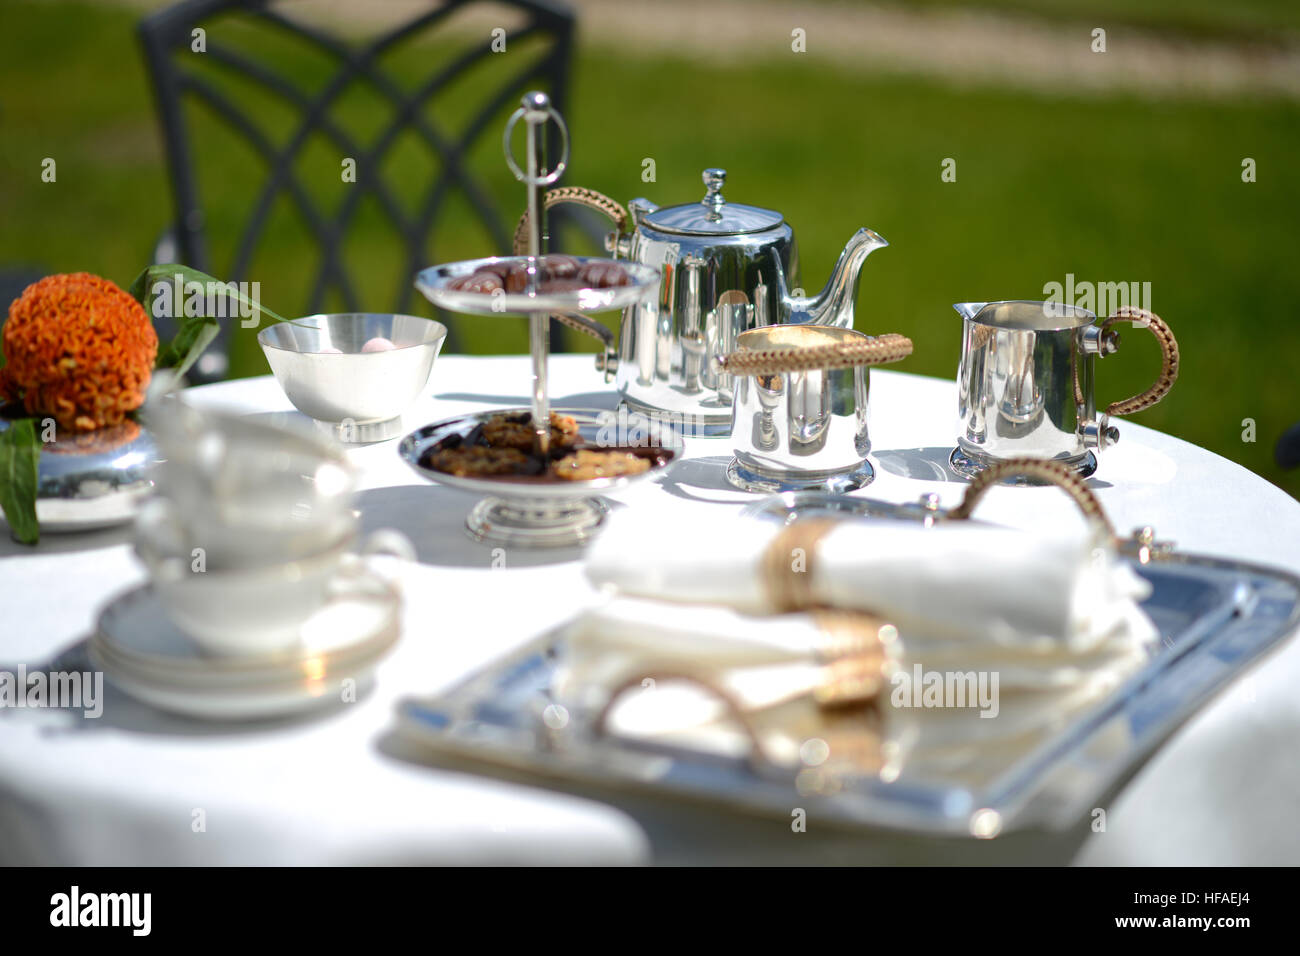 Table Set For An English High Tea Or Afternoon Tea